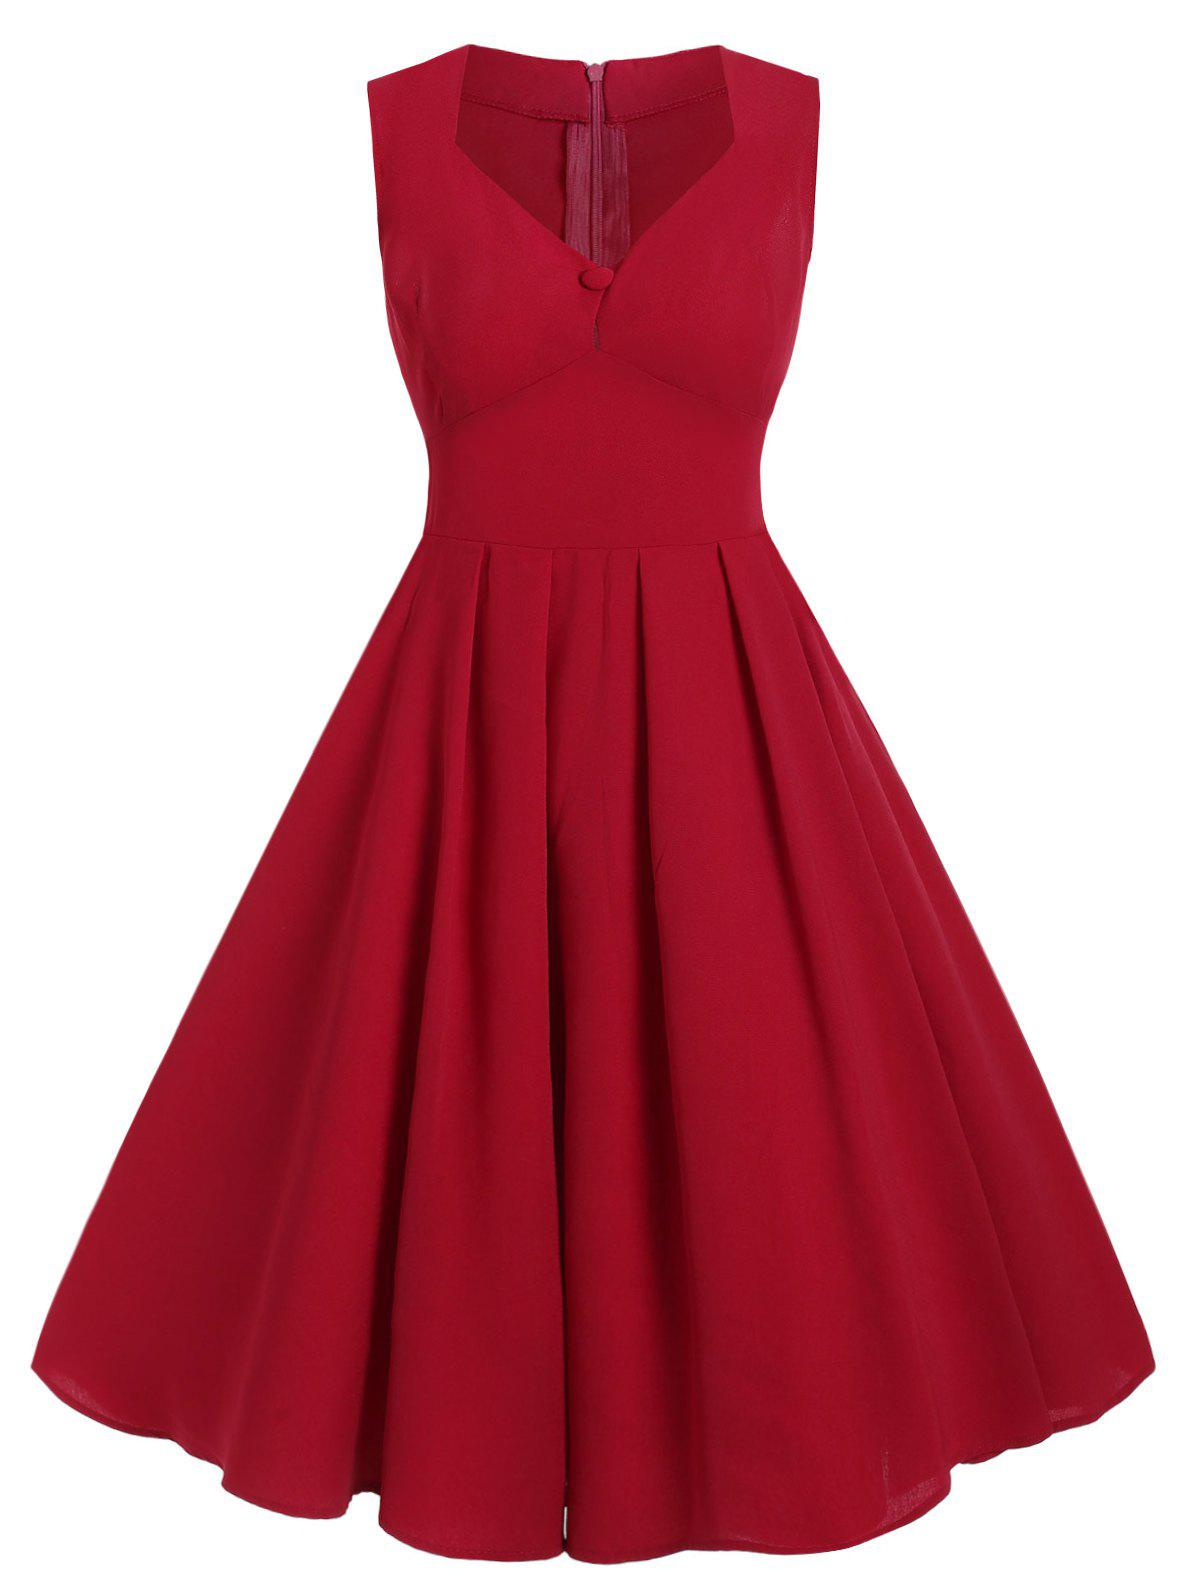 Plus Size Retro Sweetheart Neck Pin Up Dress - RED WINE 1X